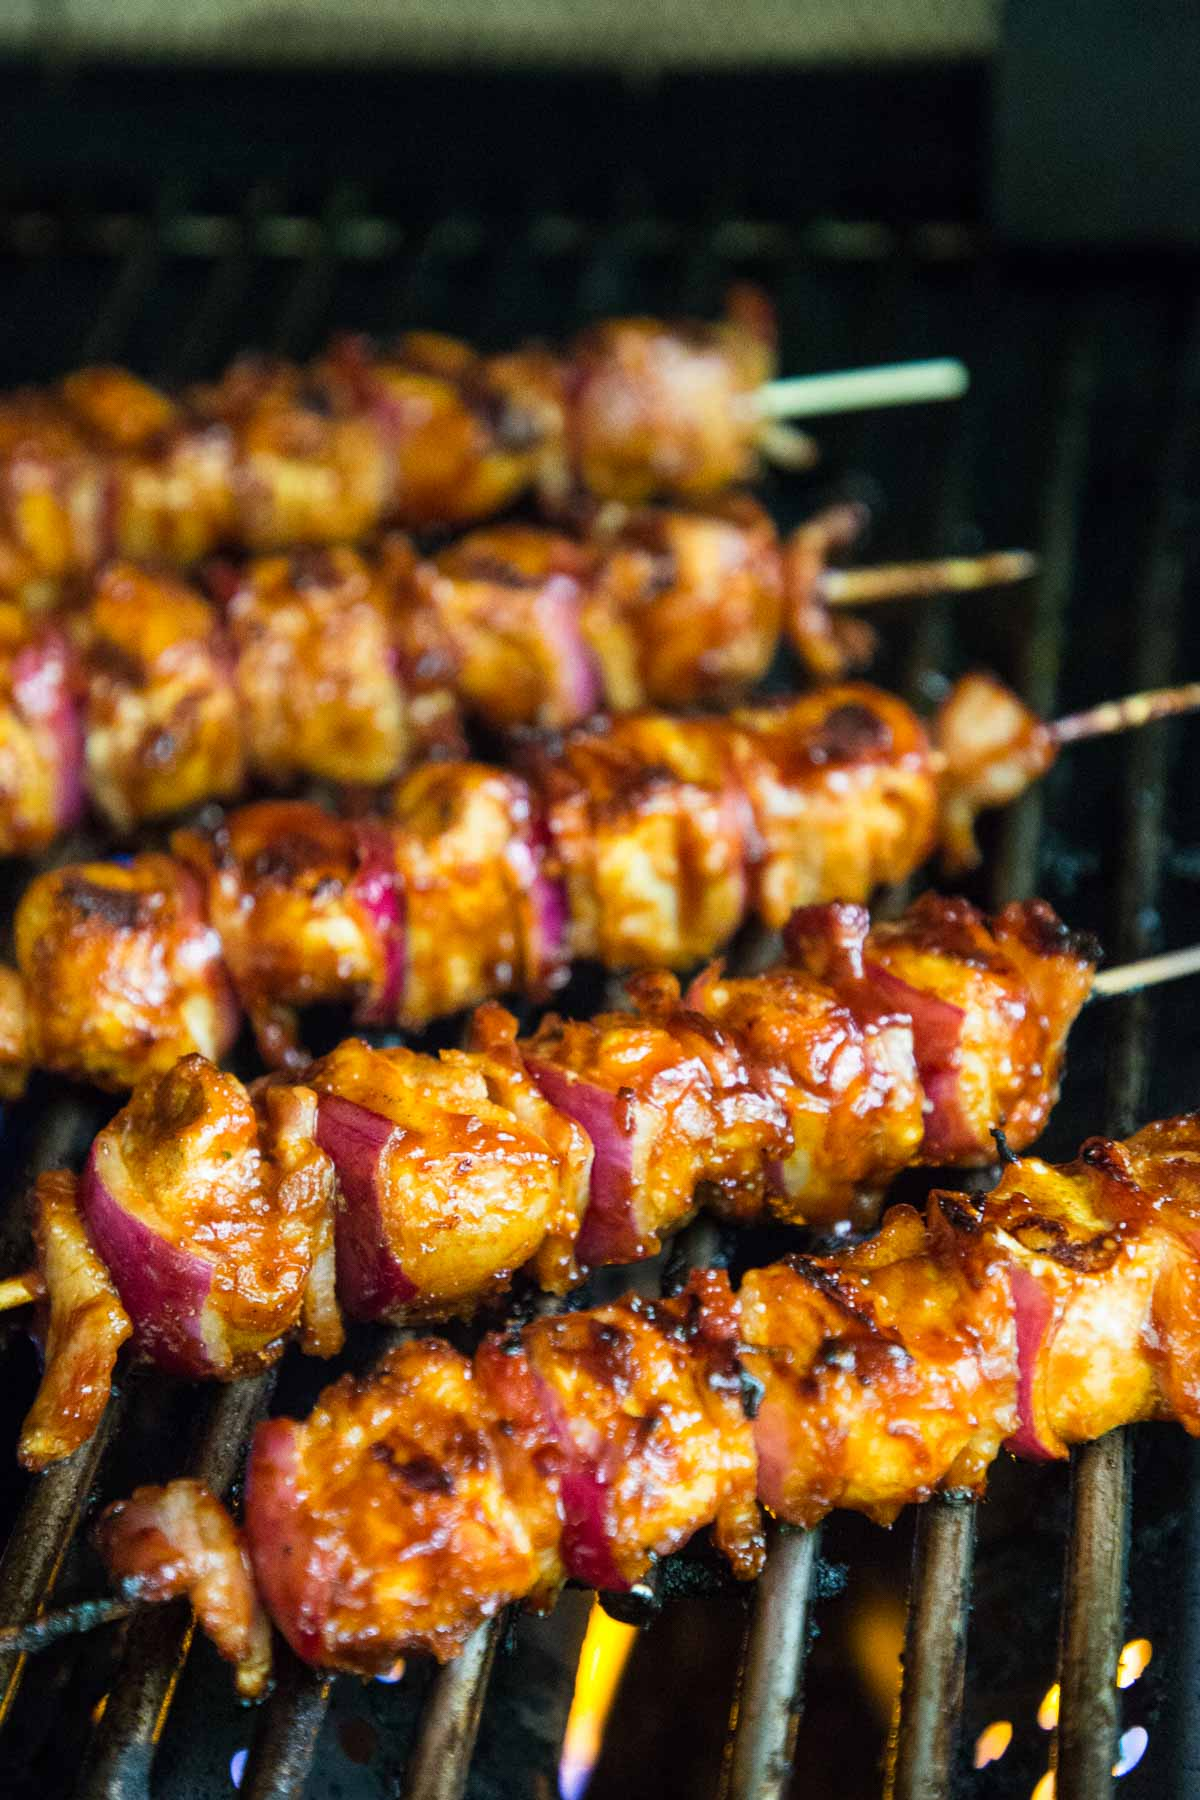 Vertical picture of barbecued chicken skewers on the grill